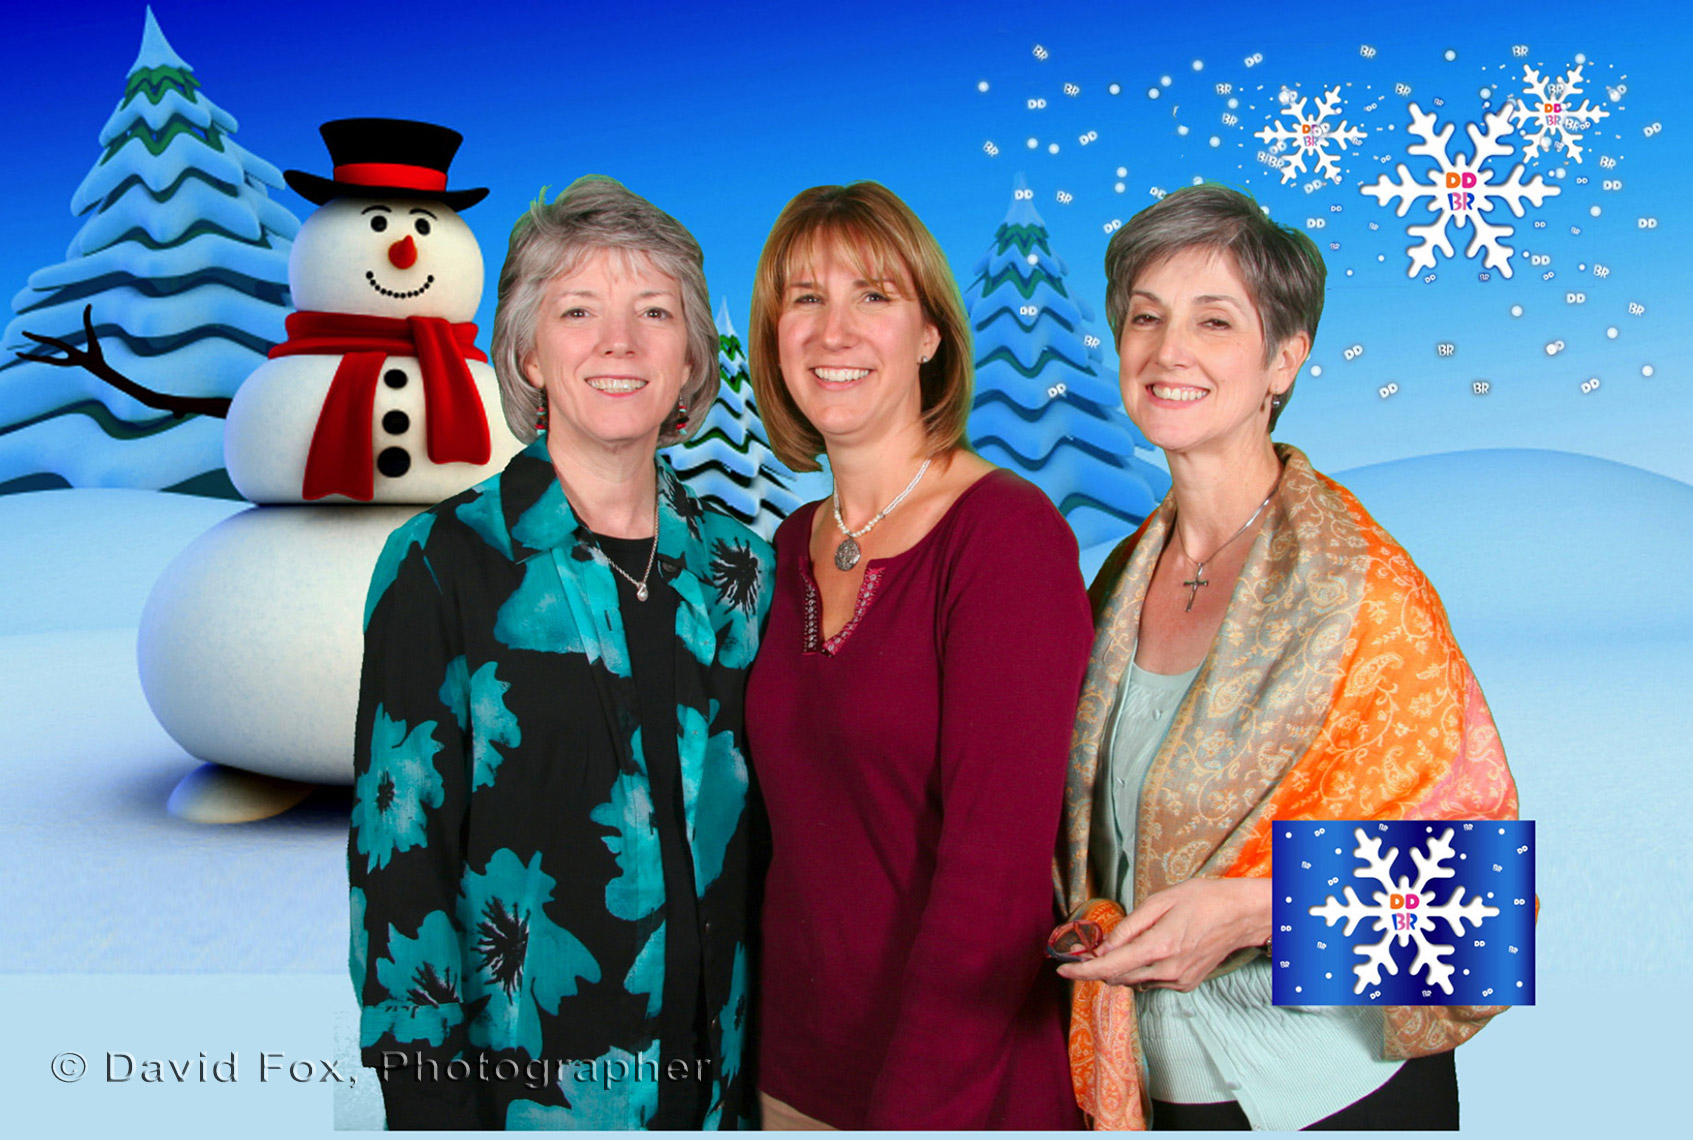 Dunkin Donuts Green Screen Holiday Card Marketing